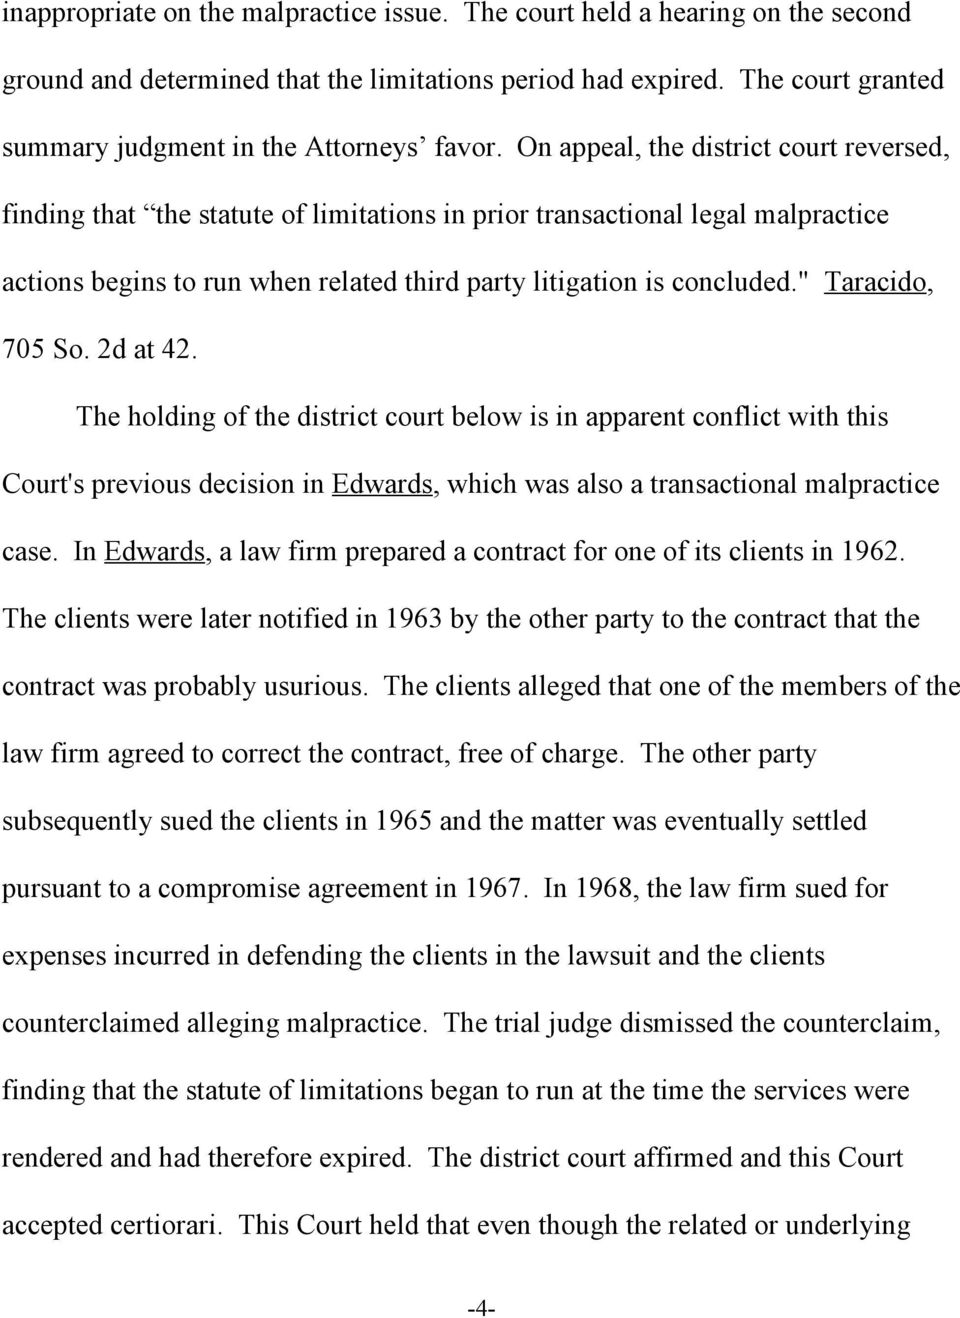 """ Taracido, 705 So. 2d at 42. The holding of the district court below is in apparent conflict with this Court's previous decision in Edwards, which was also a transactional malpractice case."